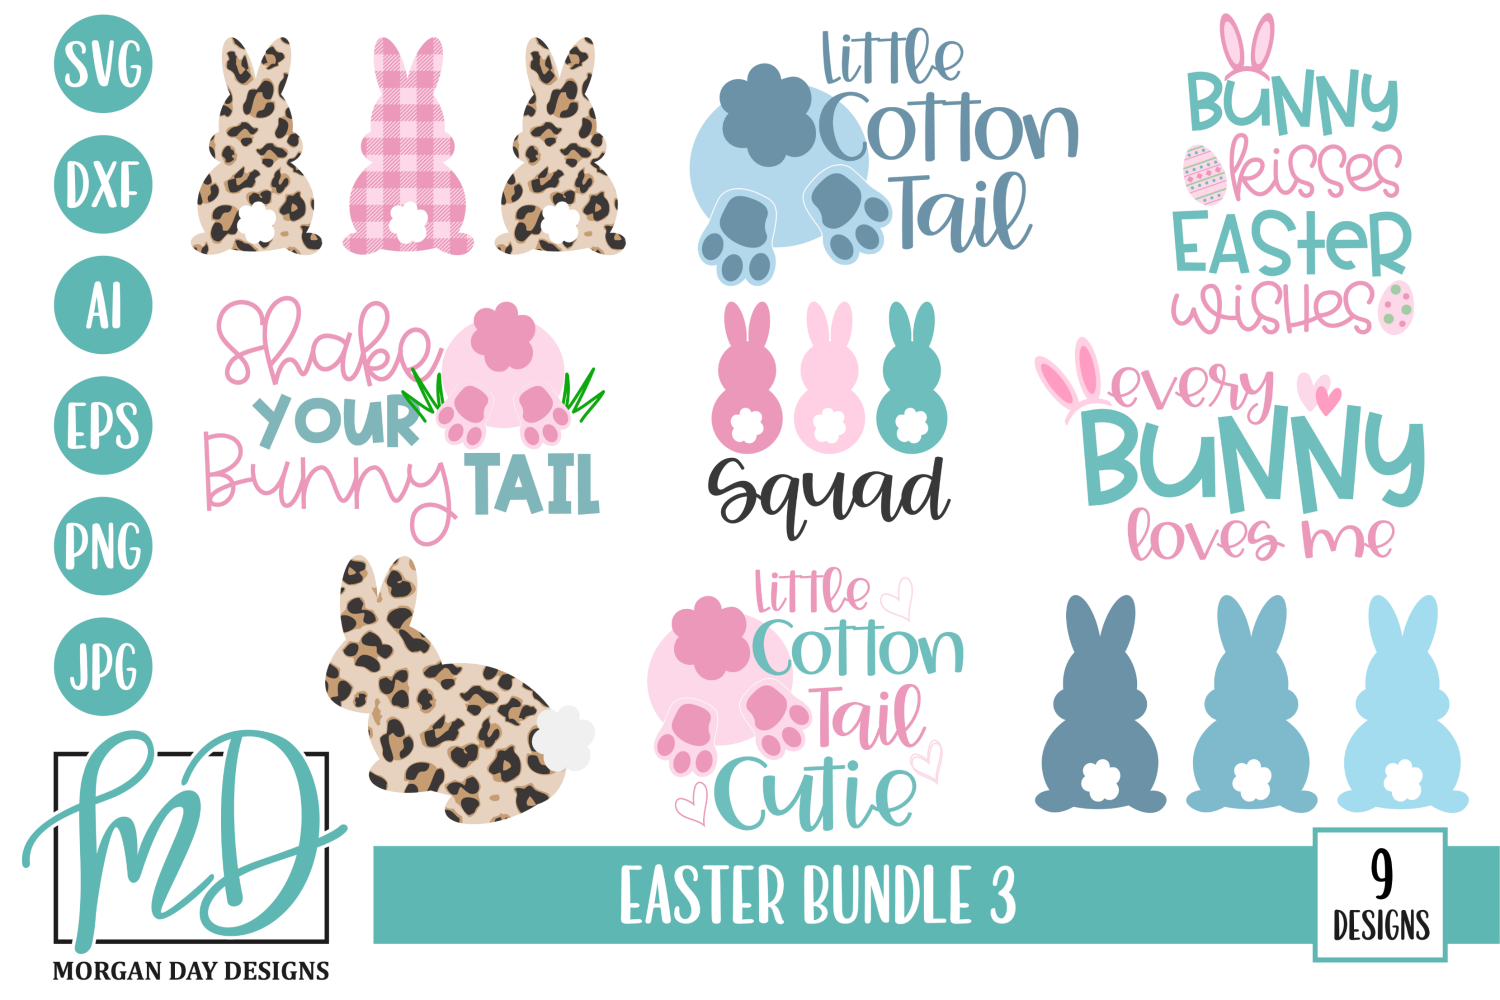 Download Free Easter Bundle Graphic By Morgan Day Designs Creative Fabrica for Cricut Explore, Silhouette and other cutting machines.